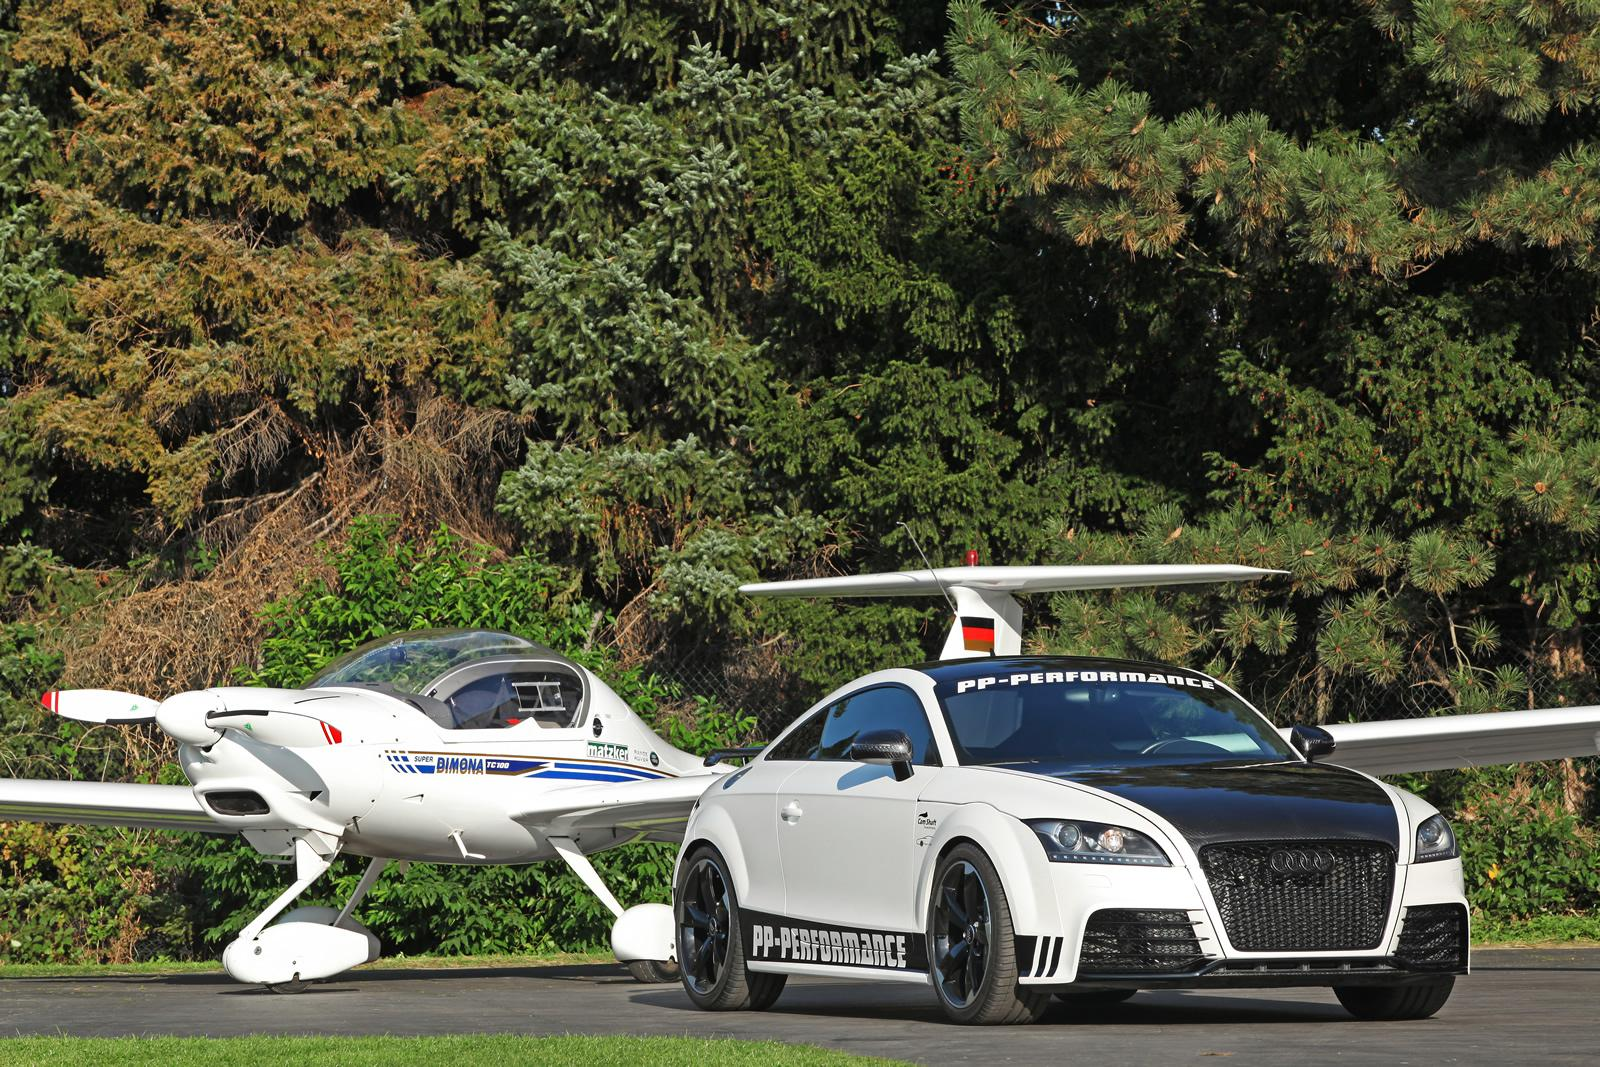 Audi Tt Rs Black White Edition By Pp Performance And Cam Shaft Autoevolution 2013 audi tt rs by pp performance